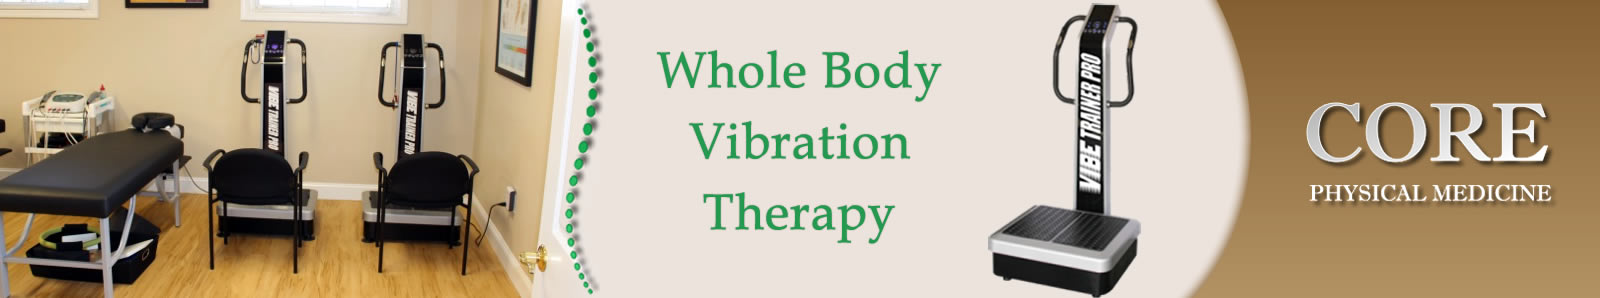 Whole_Body_Vibration_Therapy_Header.jpg